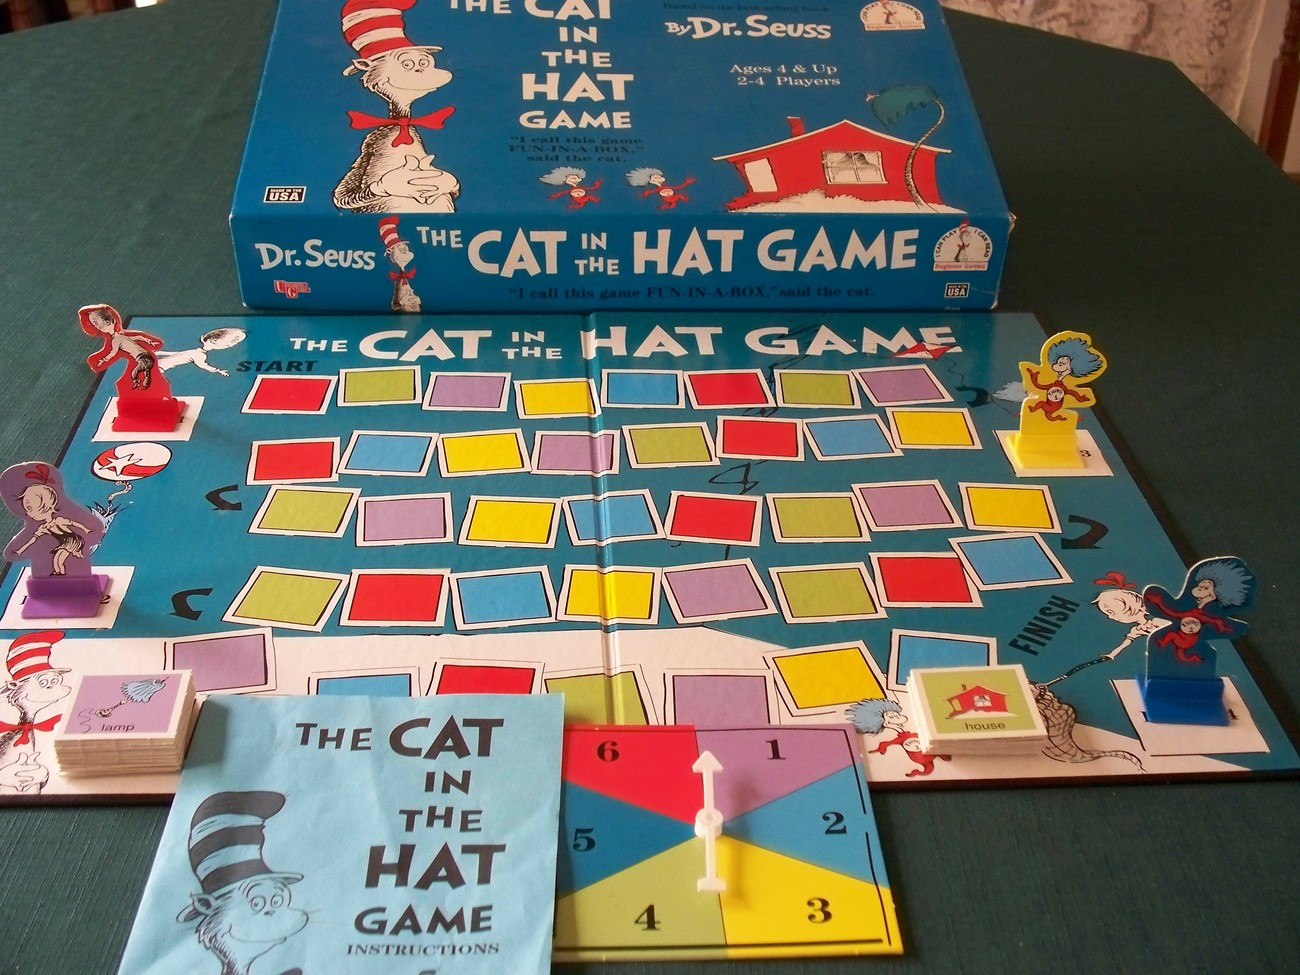 The Cat In The Hat Board Game University Games 2000, Comp. image 1